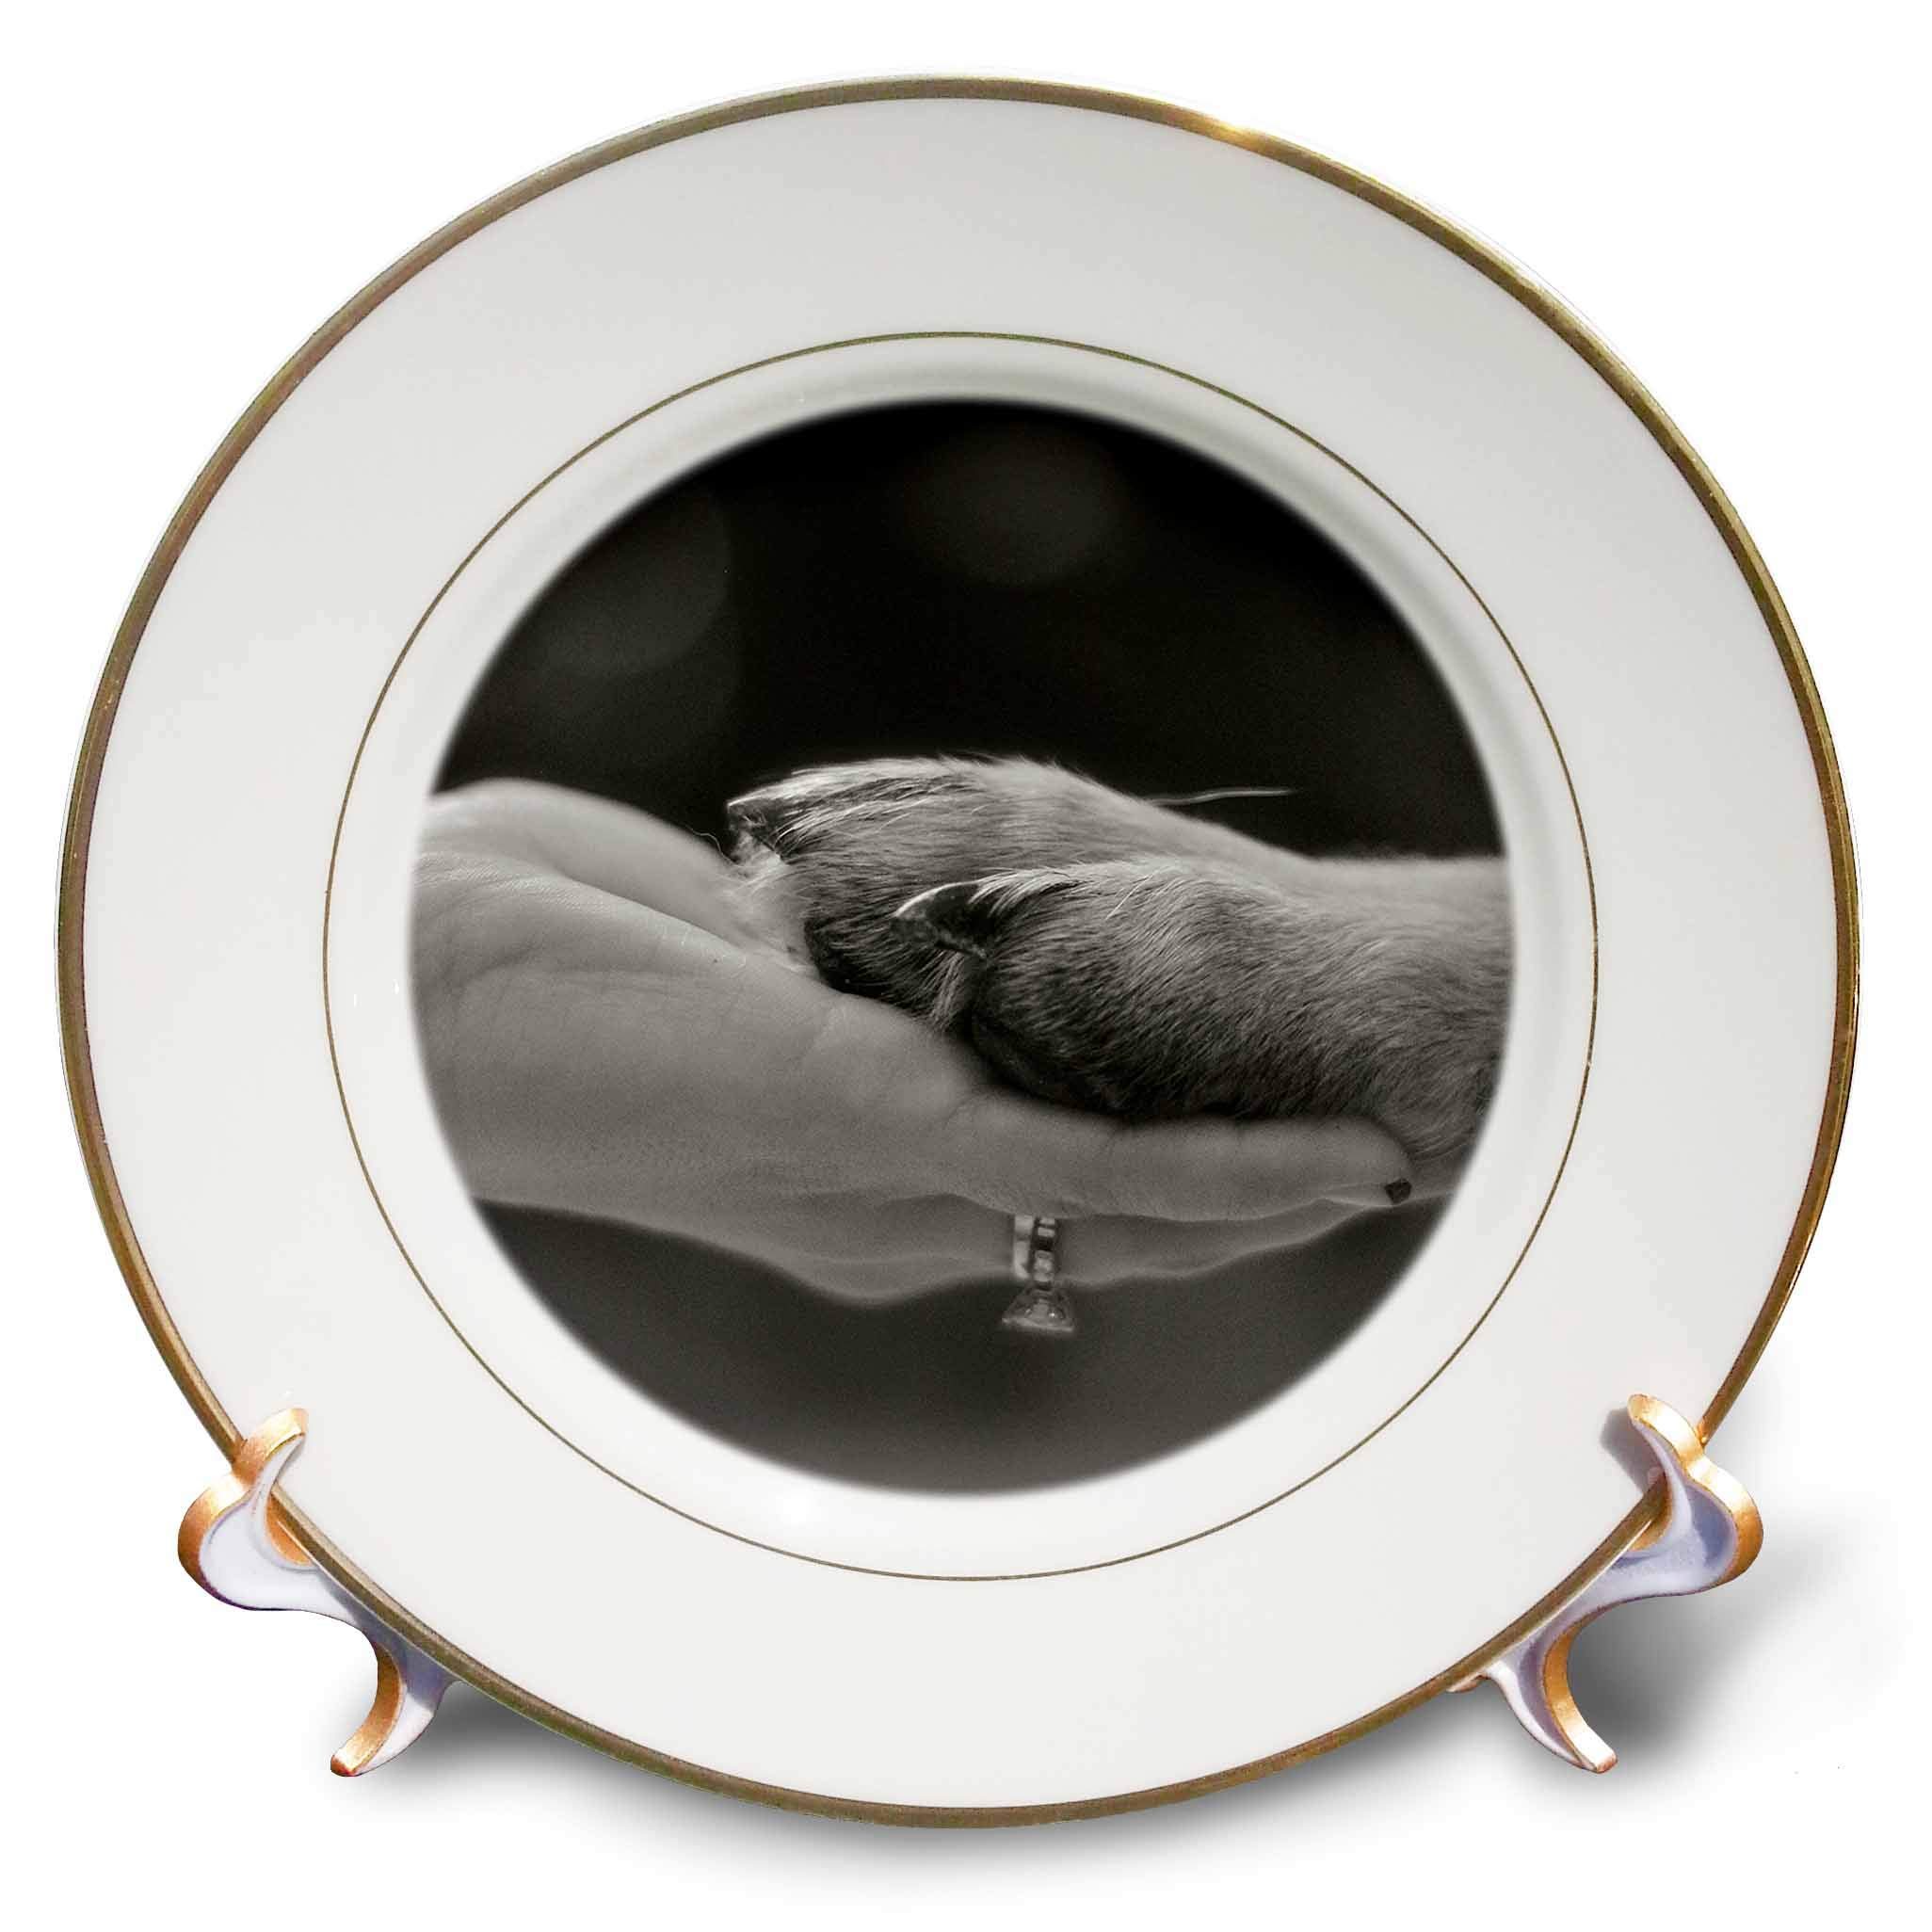 3dRose Stamp City - Animals - Black and White Photo of German Shepherd Holding Hands with its Human. - 8 inch Porcelain Plate (cp_293526_1)